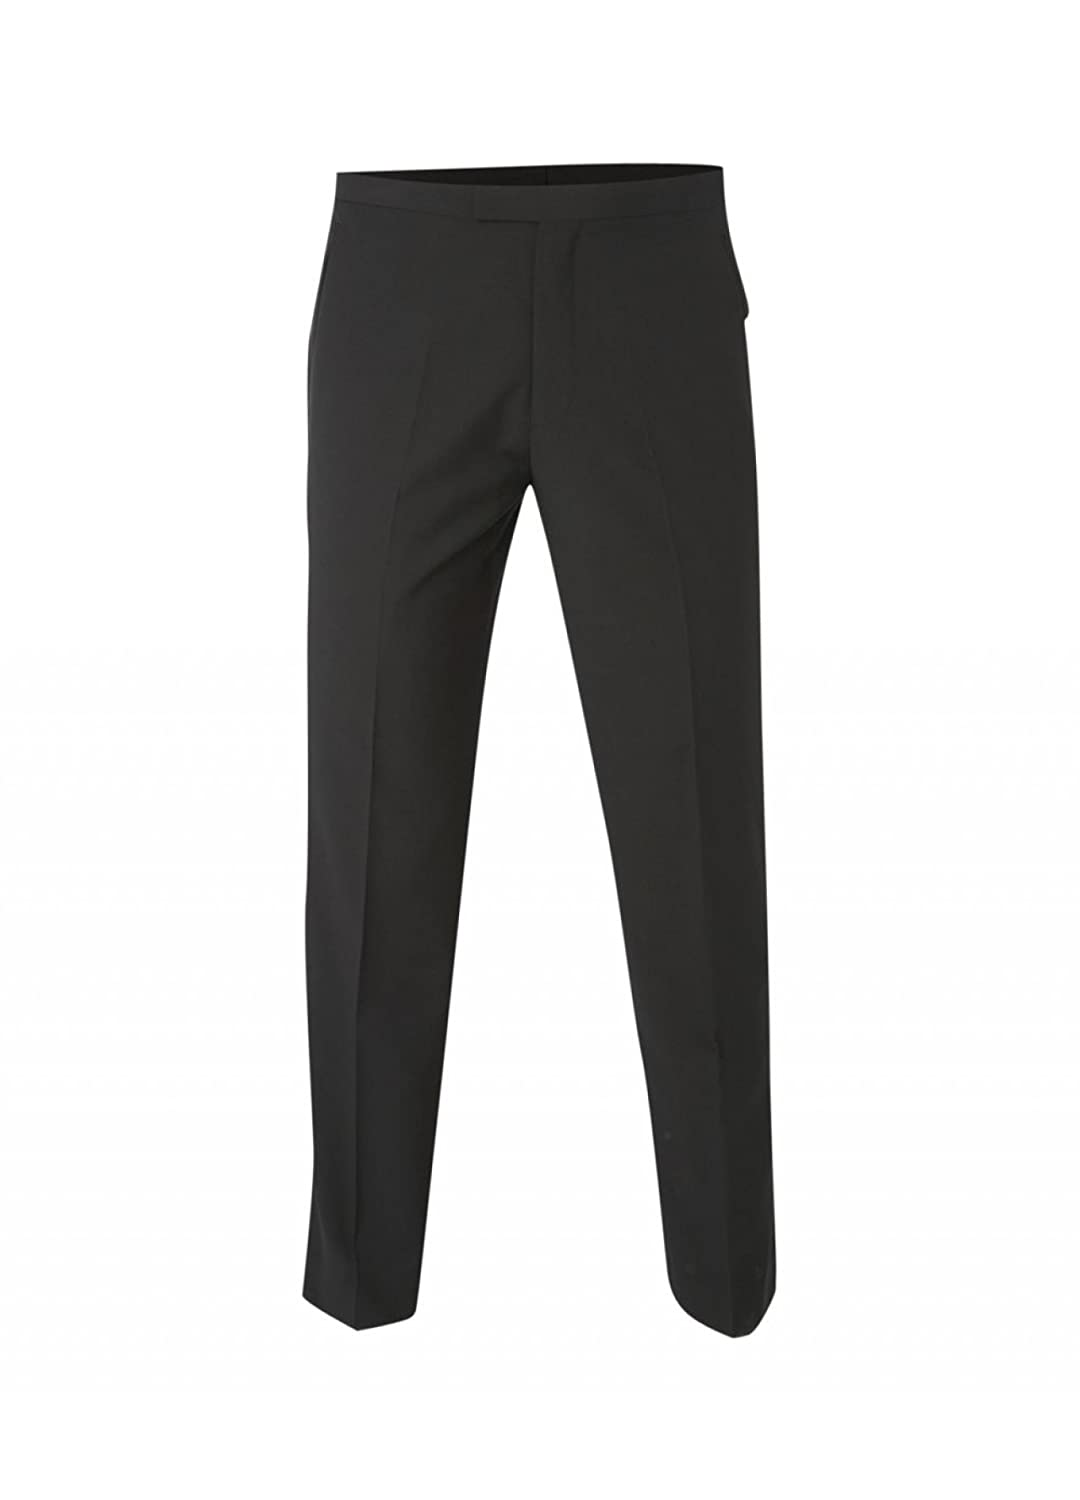 Men's Clothing Skopes Mix And Match Suit Trouser